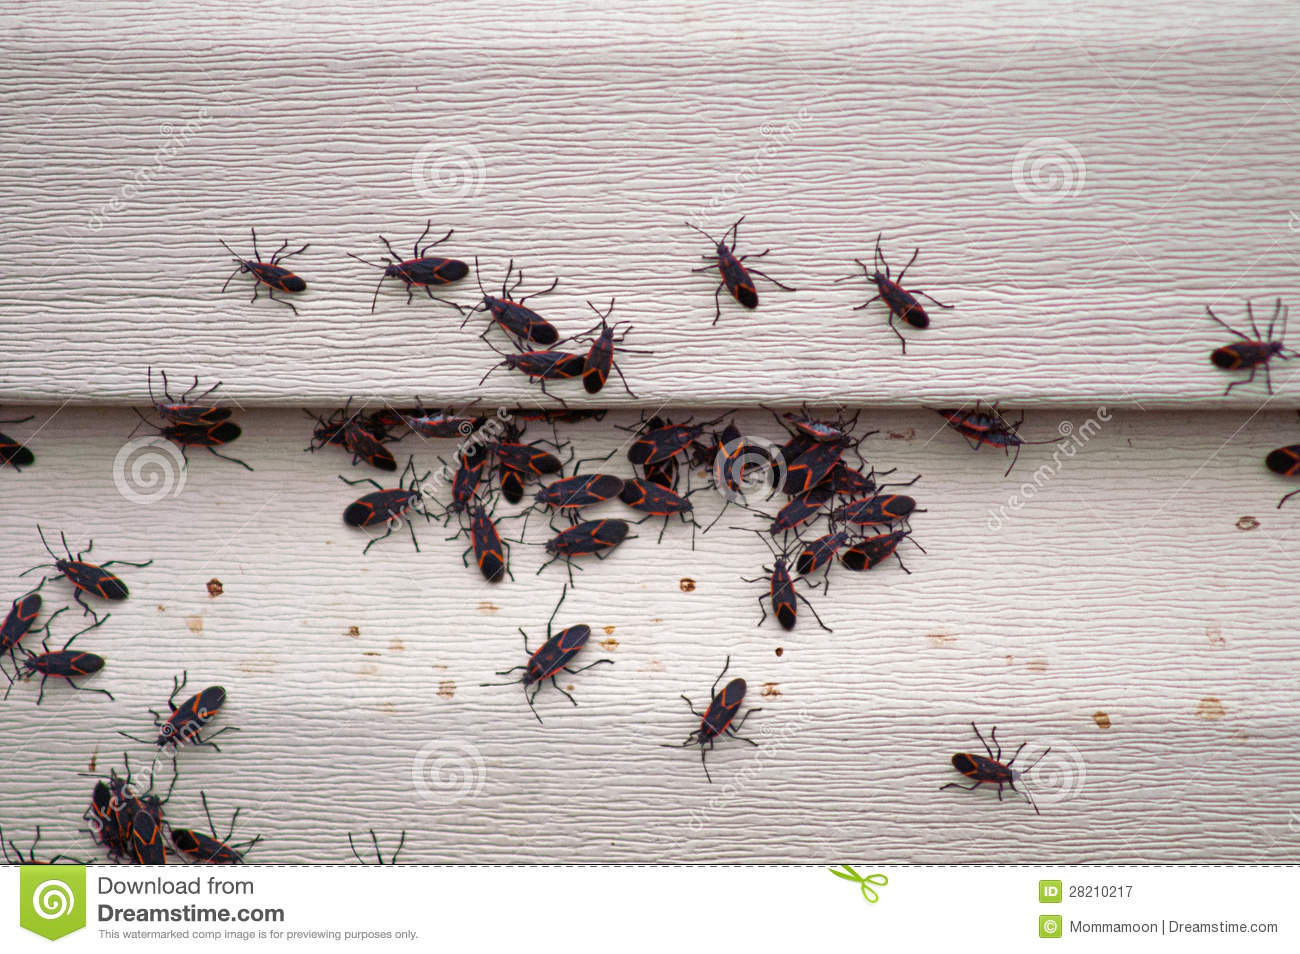 Get Rid Of Ants In Carpet Images Further 43509 Homemade